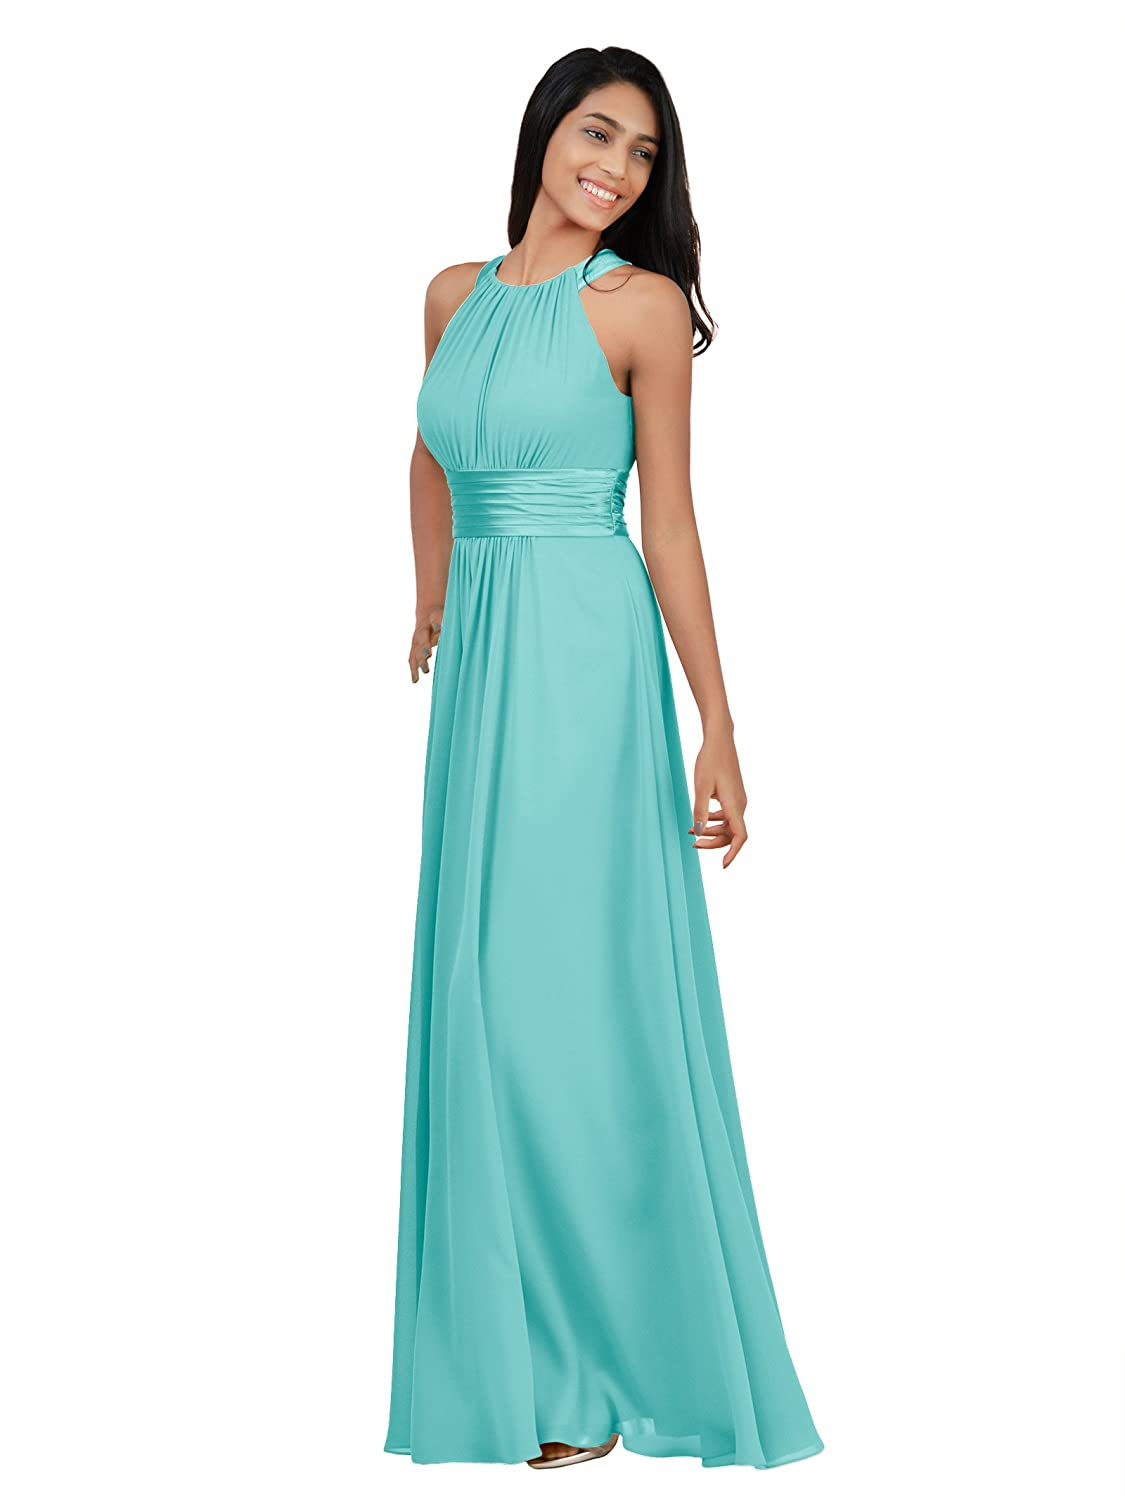 Alicepub Bridesmaid Maxi Dresses Long for